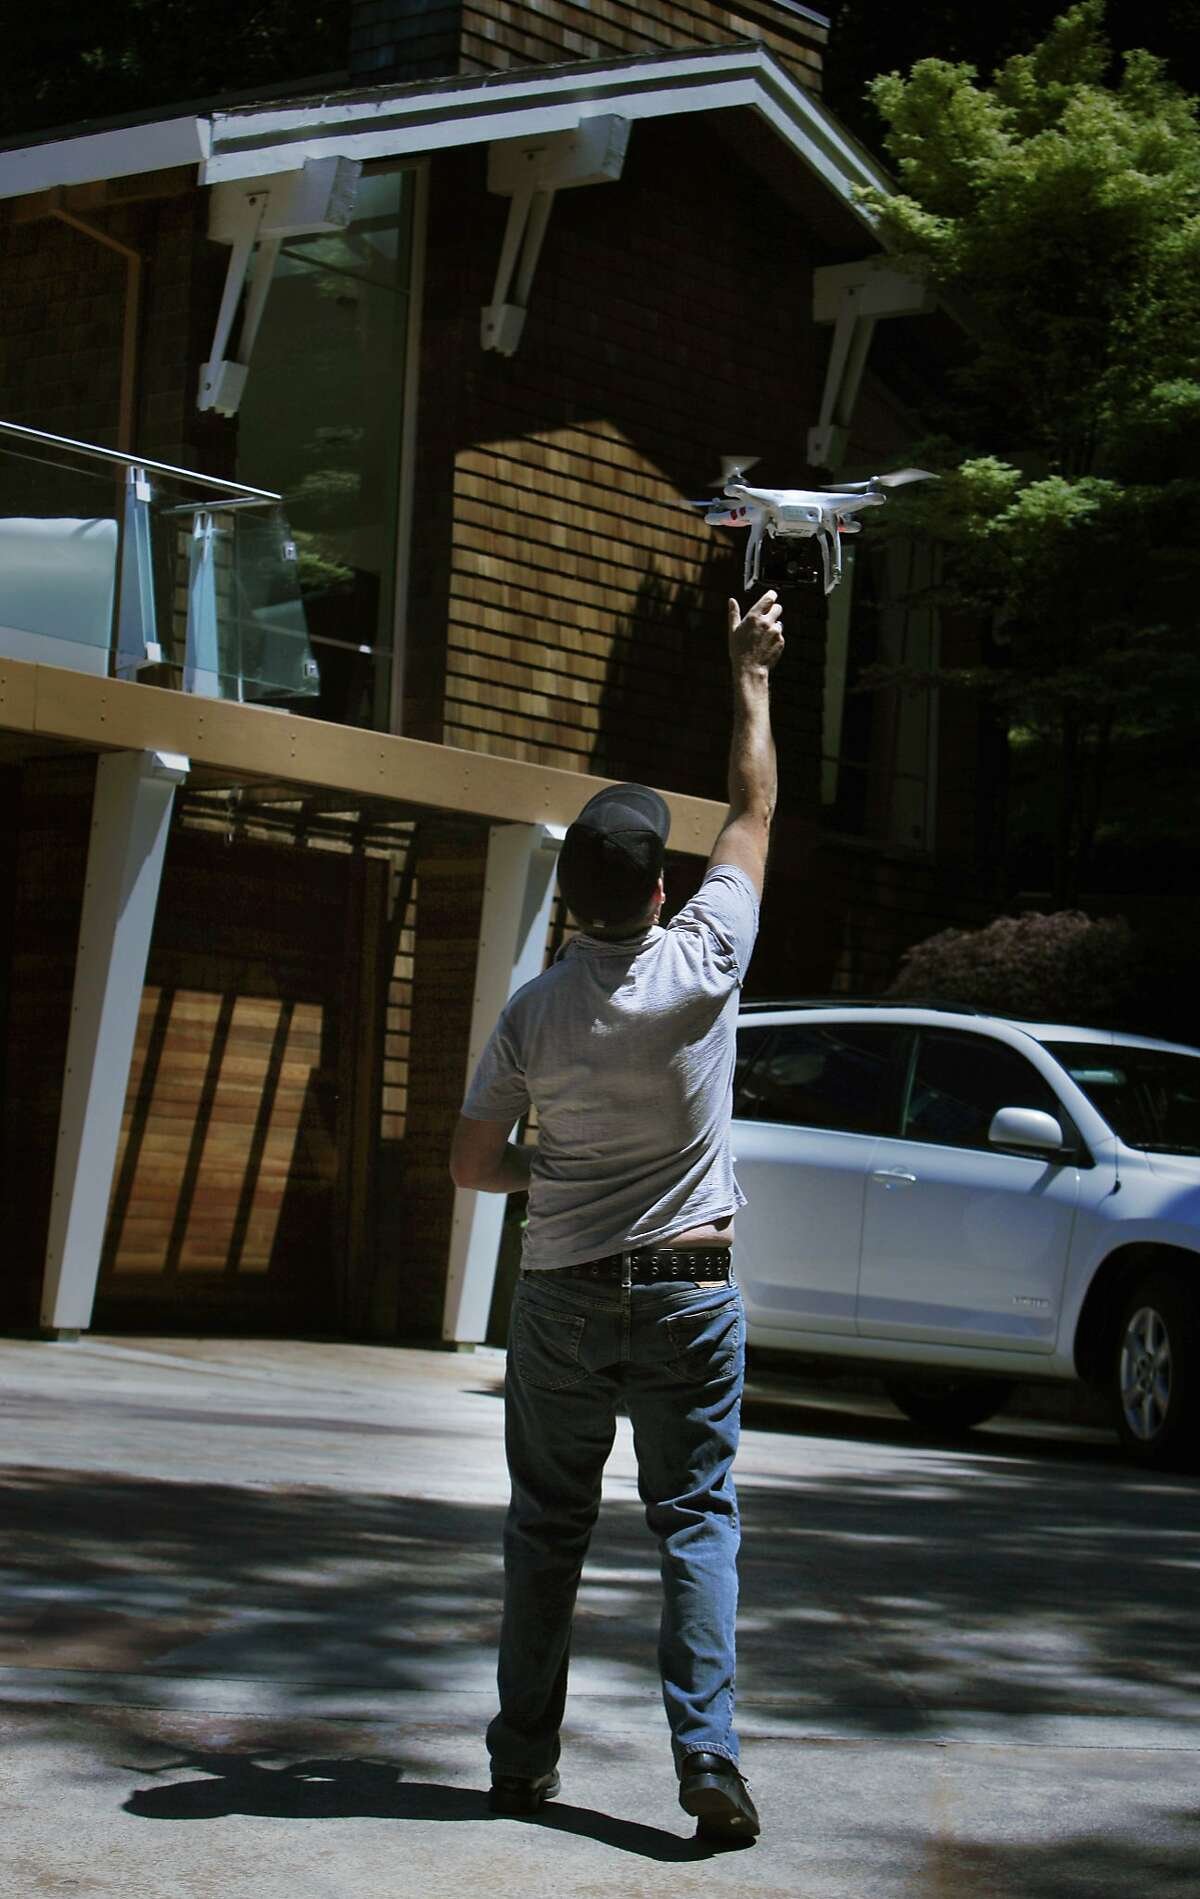 Videographer Doug Canning catches a remote-controlled quadcopter while setting it up to take an aerial video of a home in Corte Madera on Tuesday, May 13, 2014 in Corte Madera, Calif.